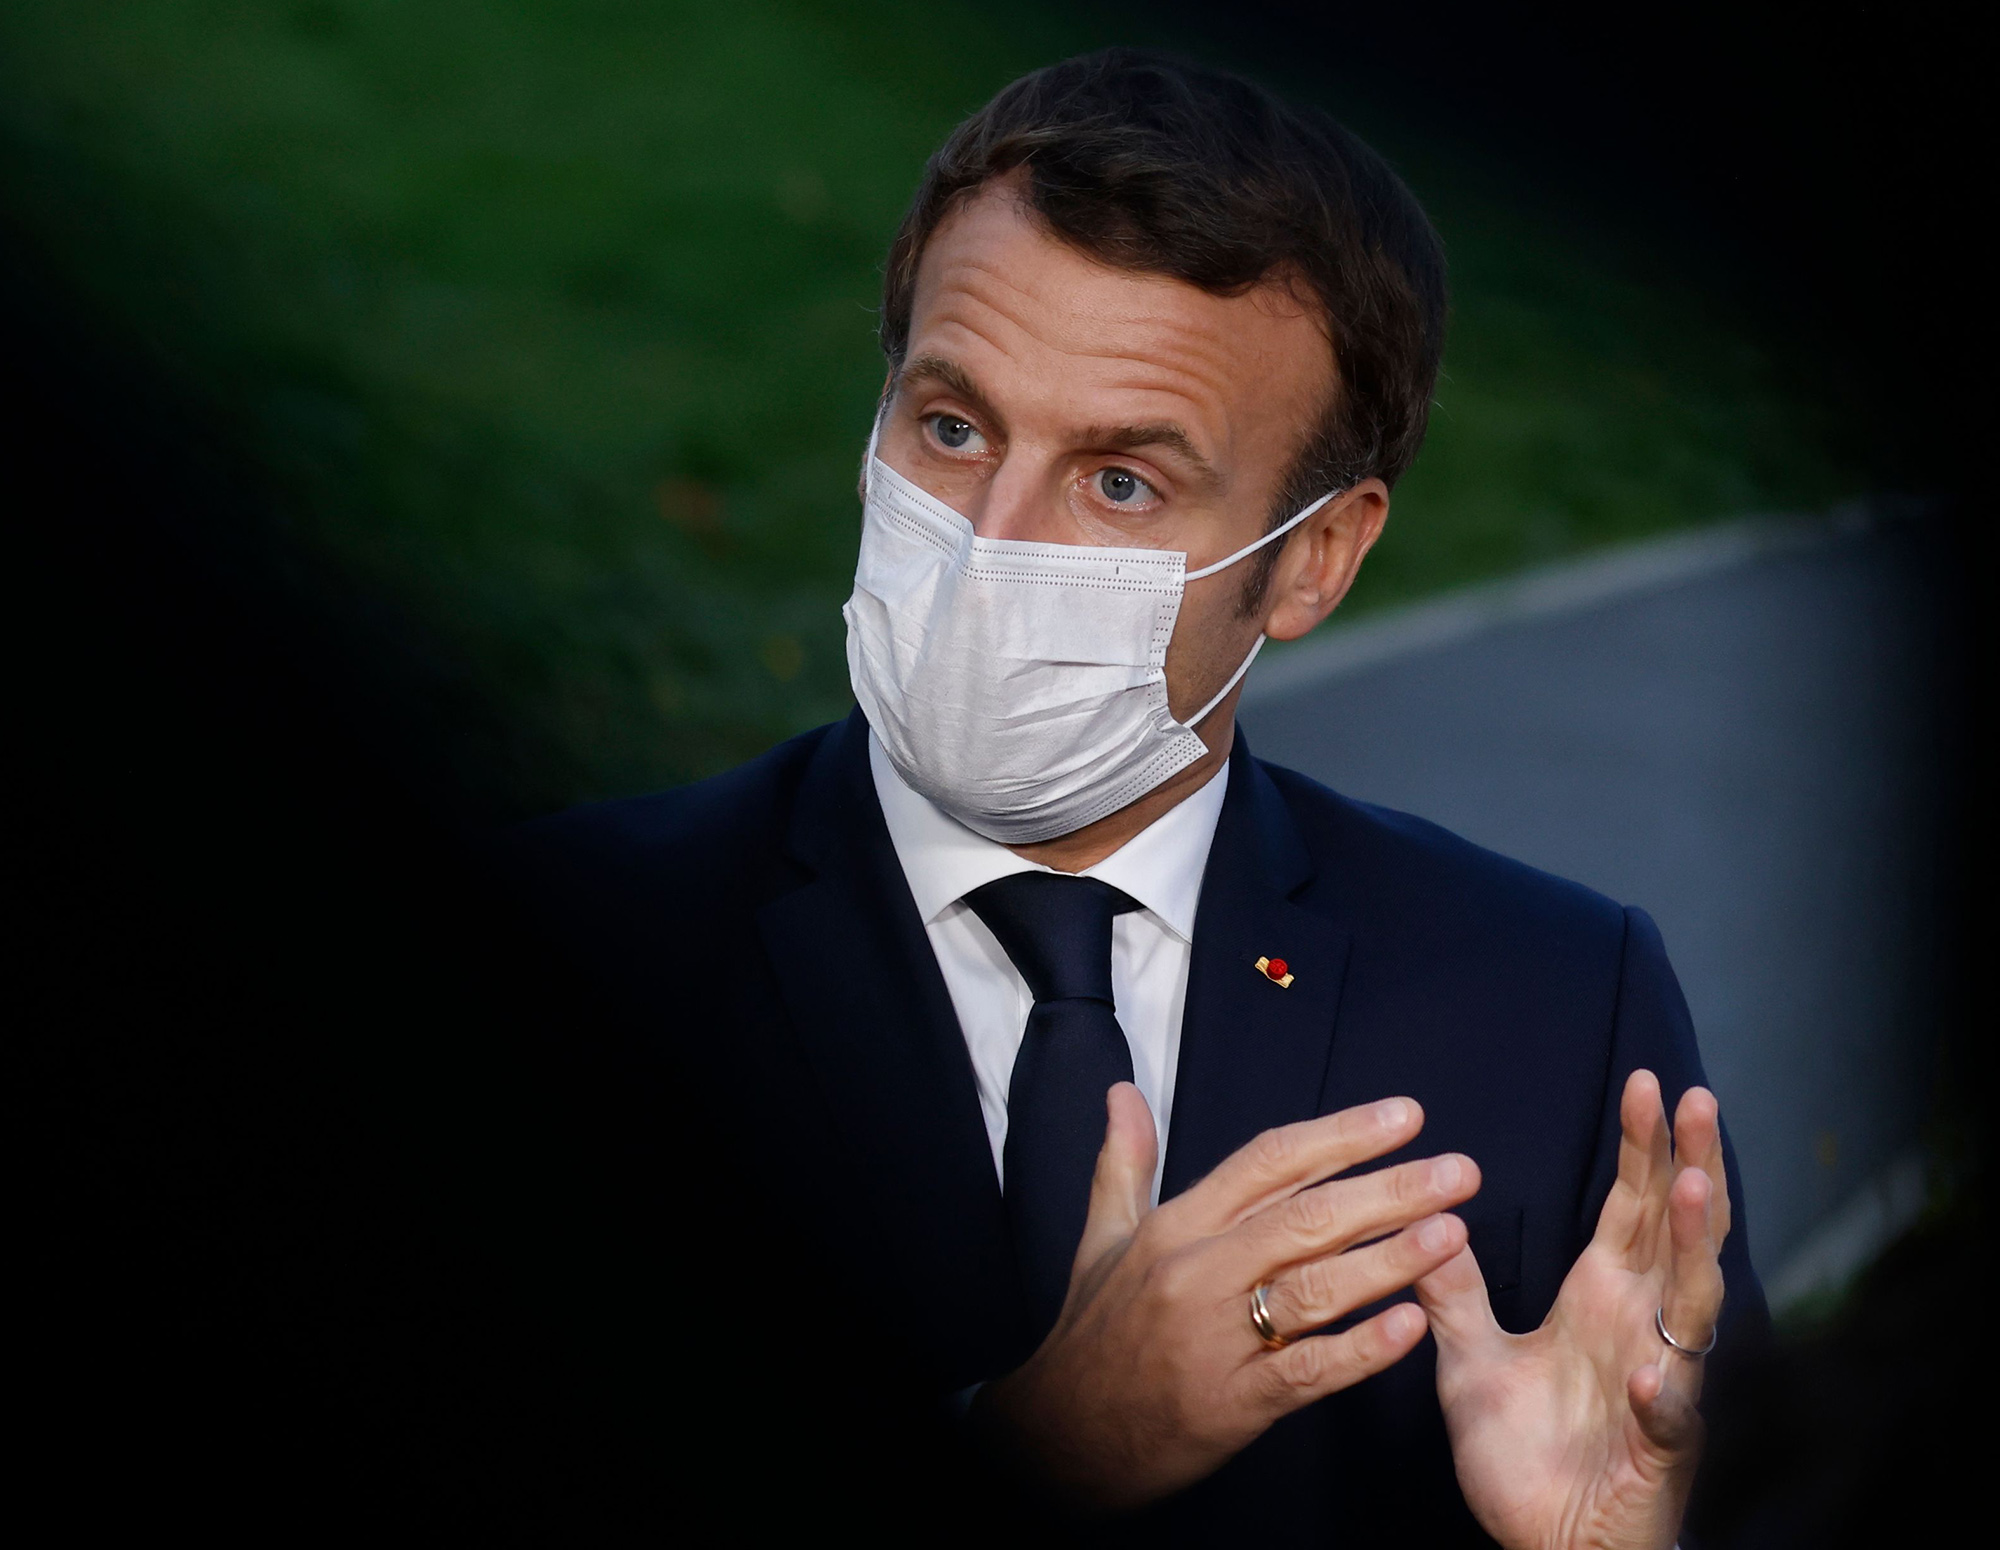 France Has Most Virus Deaths Since April As Macron Readies Curbs Bloomberg